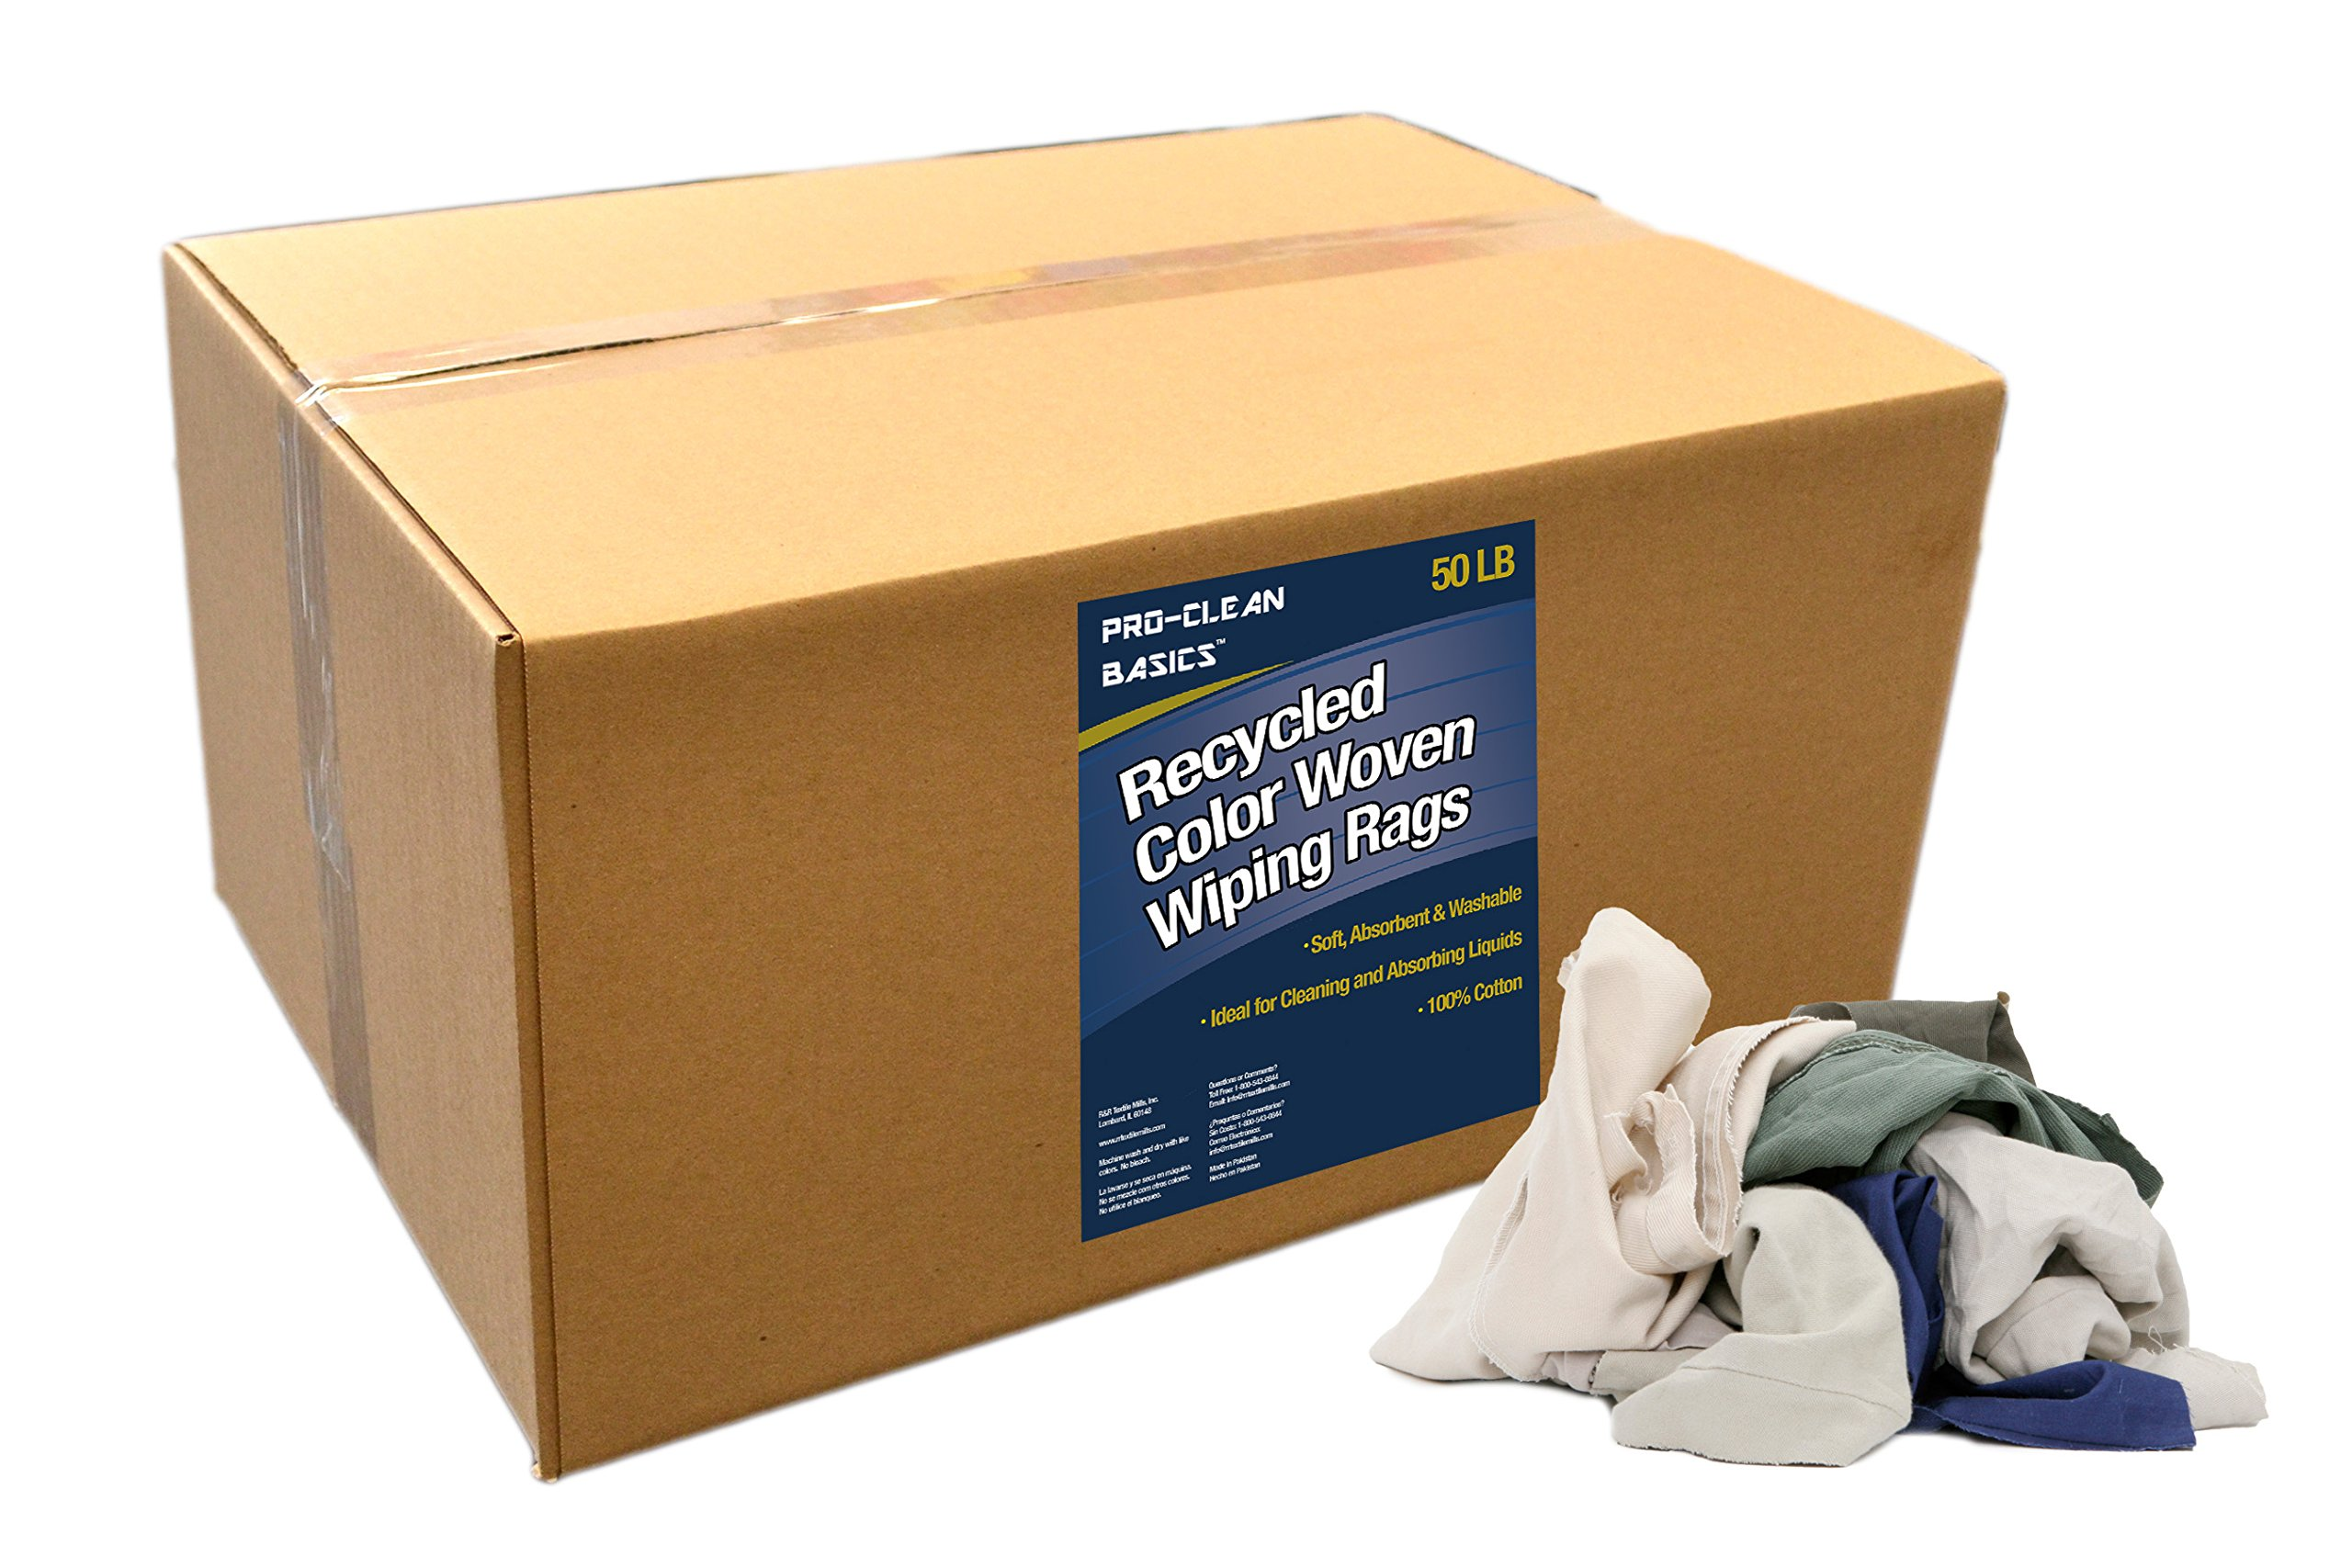 Pro-Clean Basics 99602 Recycled Color Woven Wiping Rags, 50 lb. Box